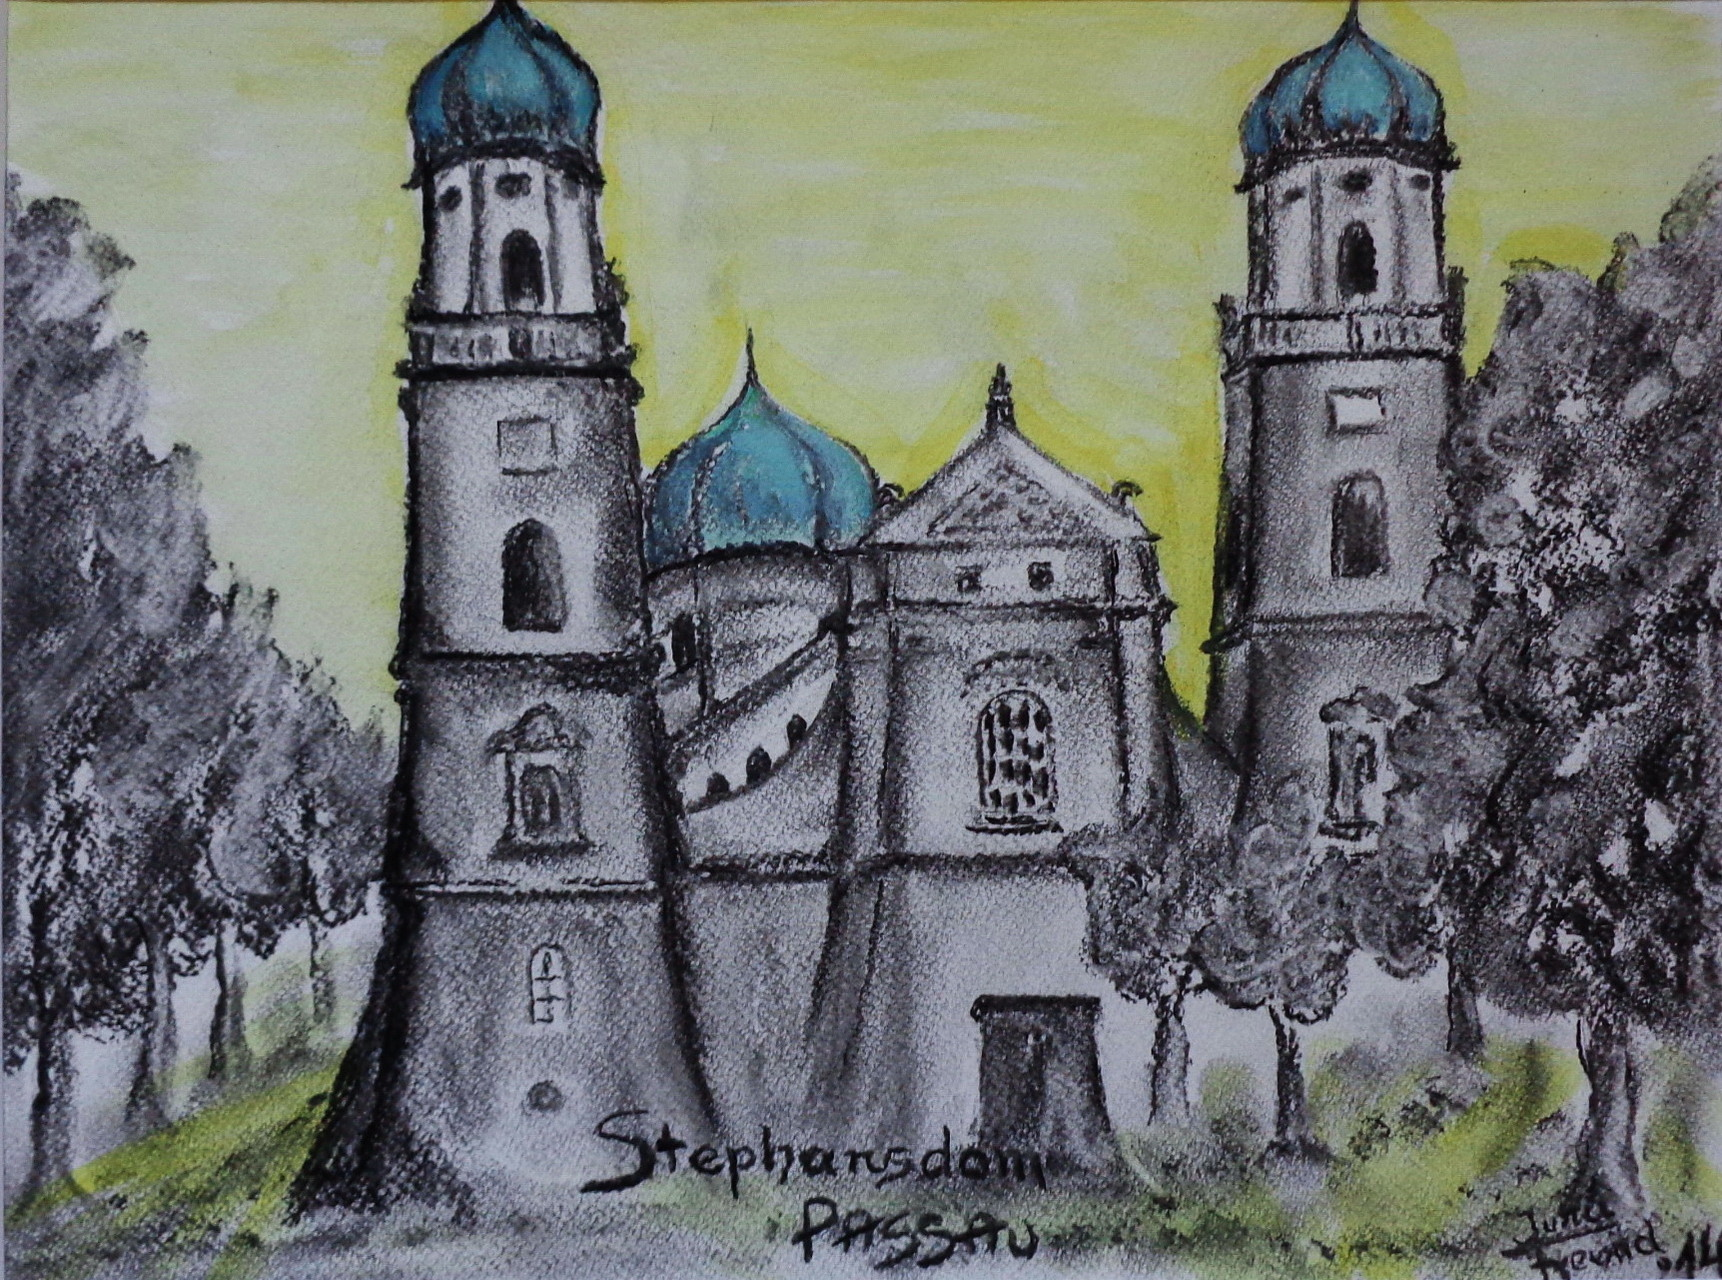 Stephans-Dom in Passau 40x50